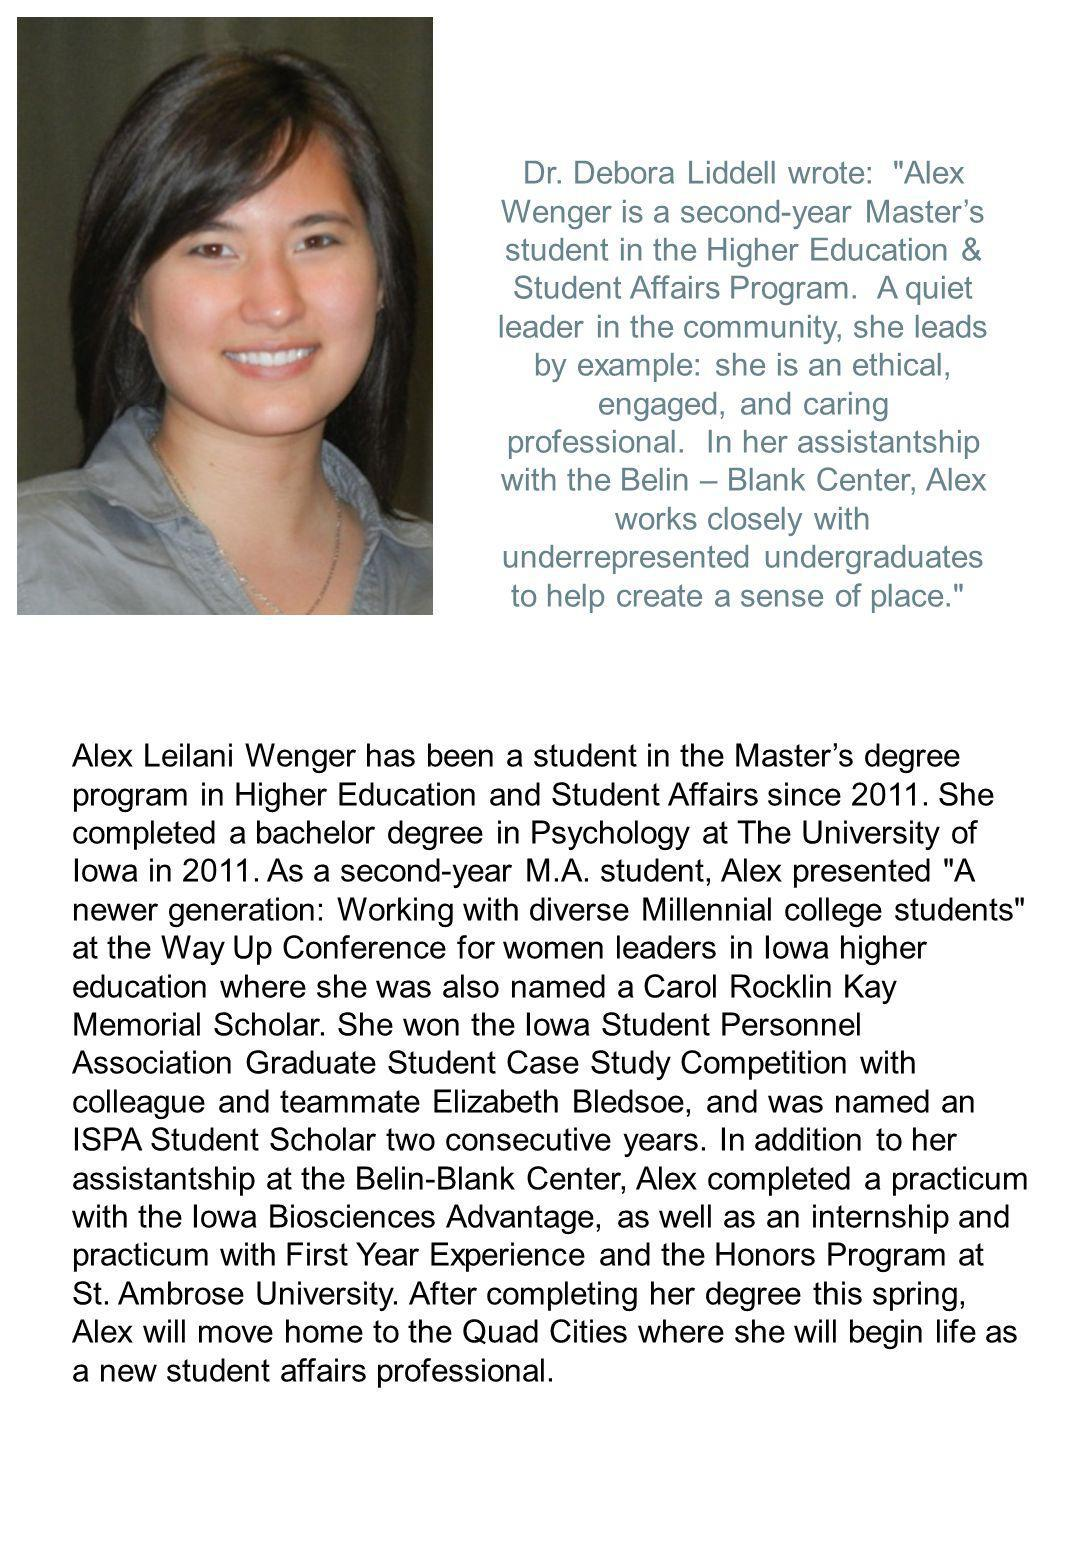 Dr. Debora Liddell wrote: Alex Wenger is a second-year Master's student in the Higher Education & Student Affairs Program. A quiet leader in the community, she leads by example: she is an ethical, engaged, and caring professional. In her assistantship with the Belin – Blank Center, Alex works closely with underrepresented undergraduates to help create a sense of place.